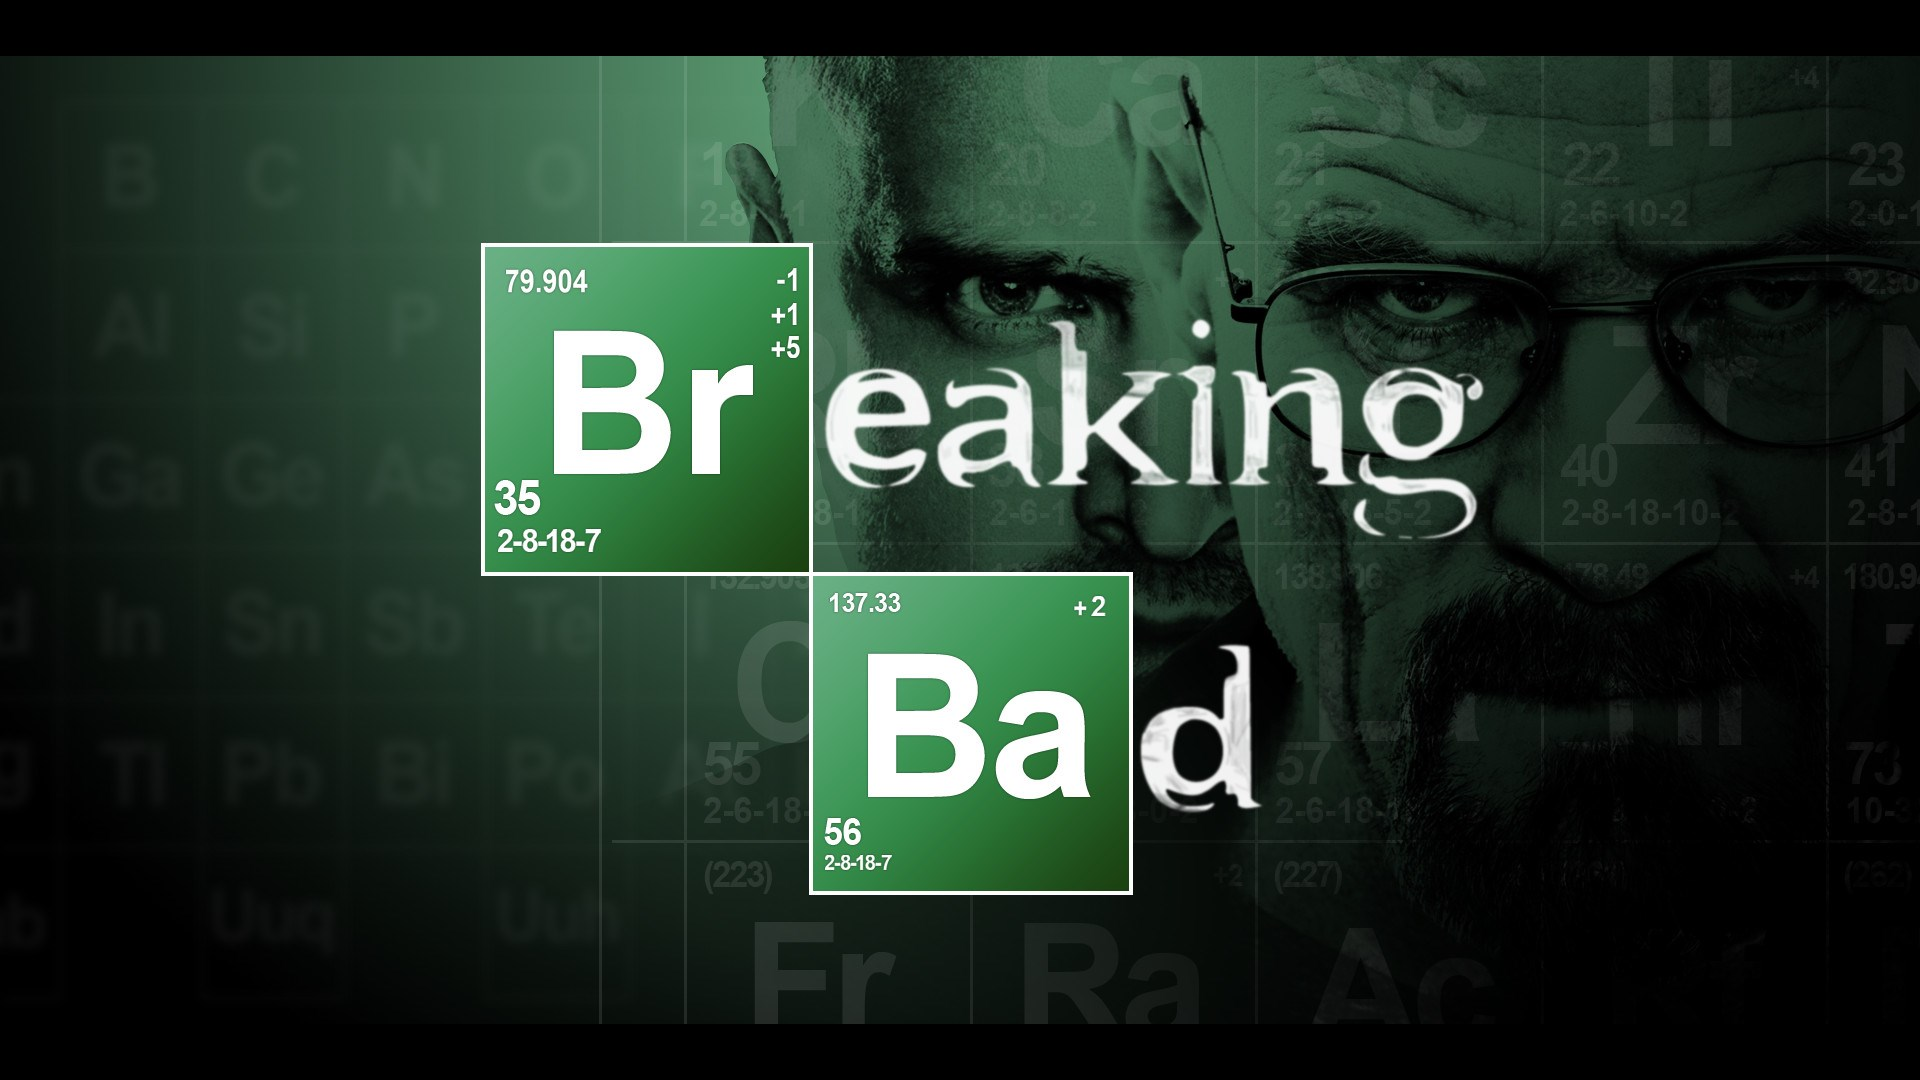 breaking-bad-computer-backgrounds-wallpaper-wpc9003159